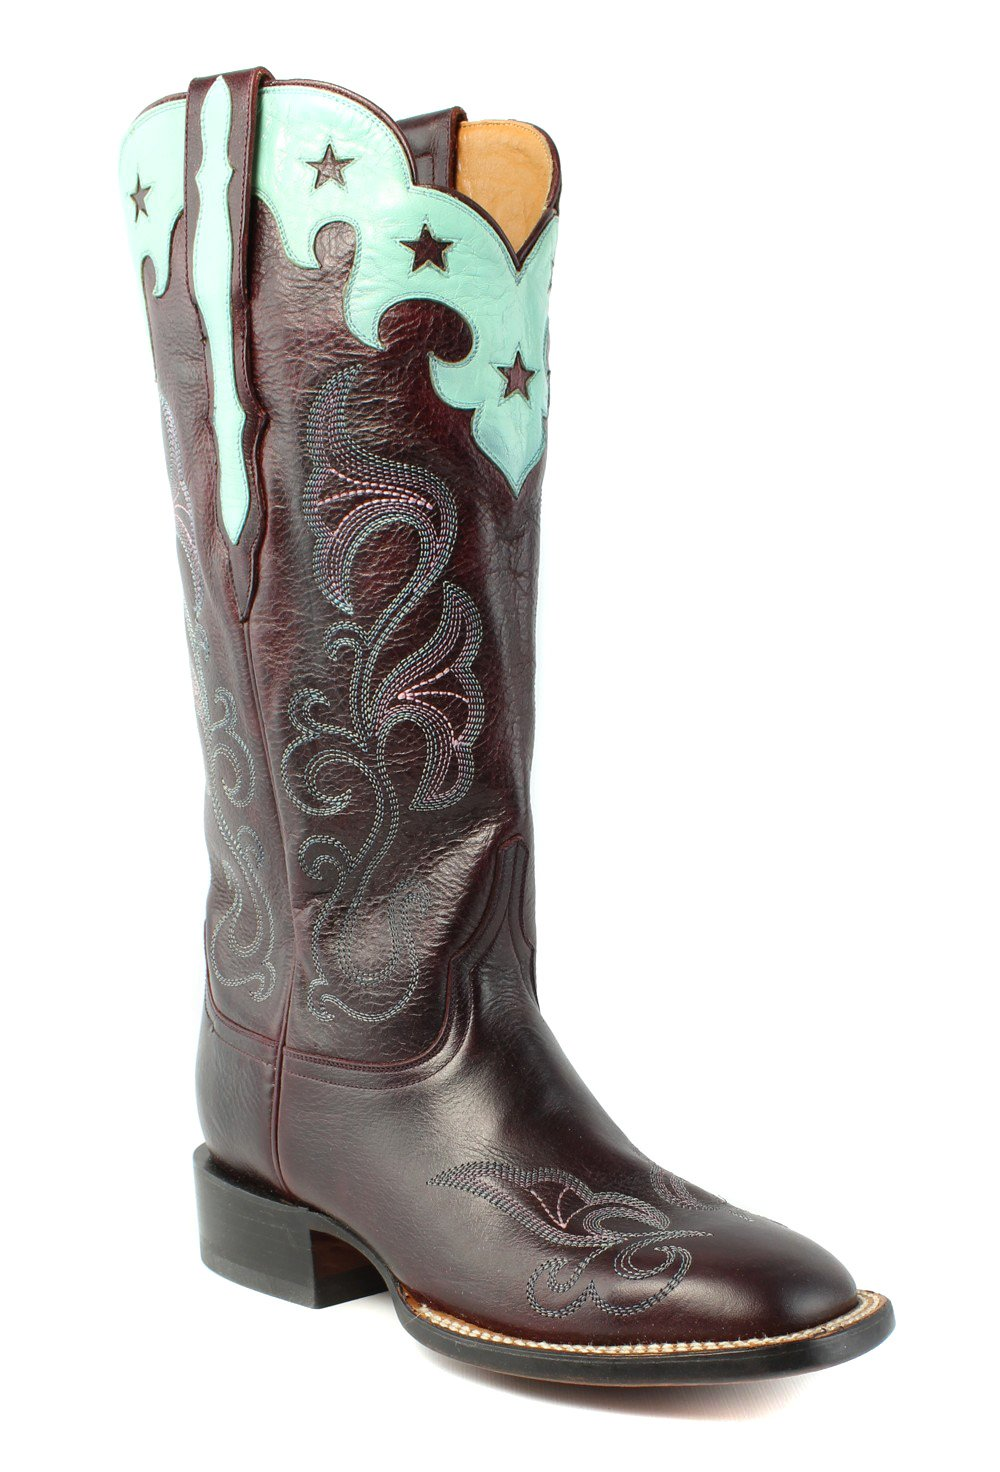 Lucchese Women's Scallop Top Star Western Boot, Burgundy, 8 M US